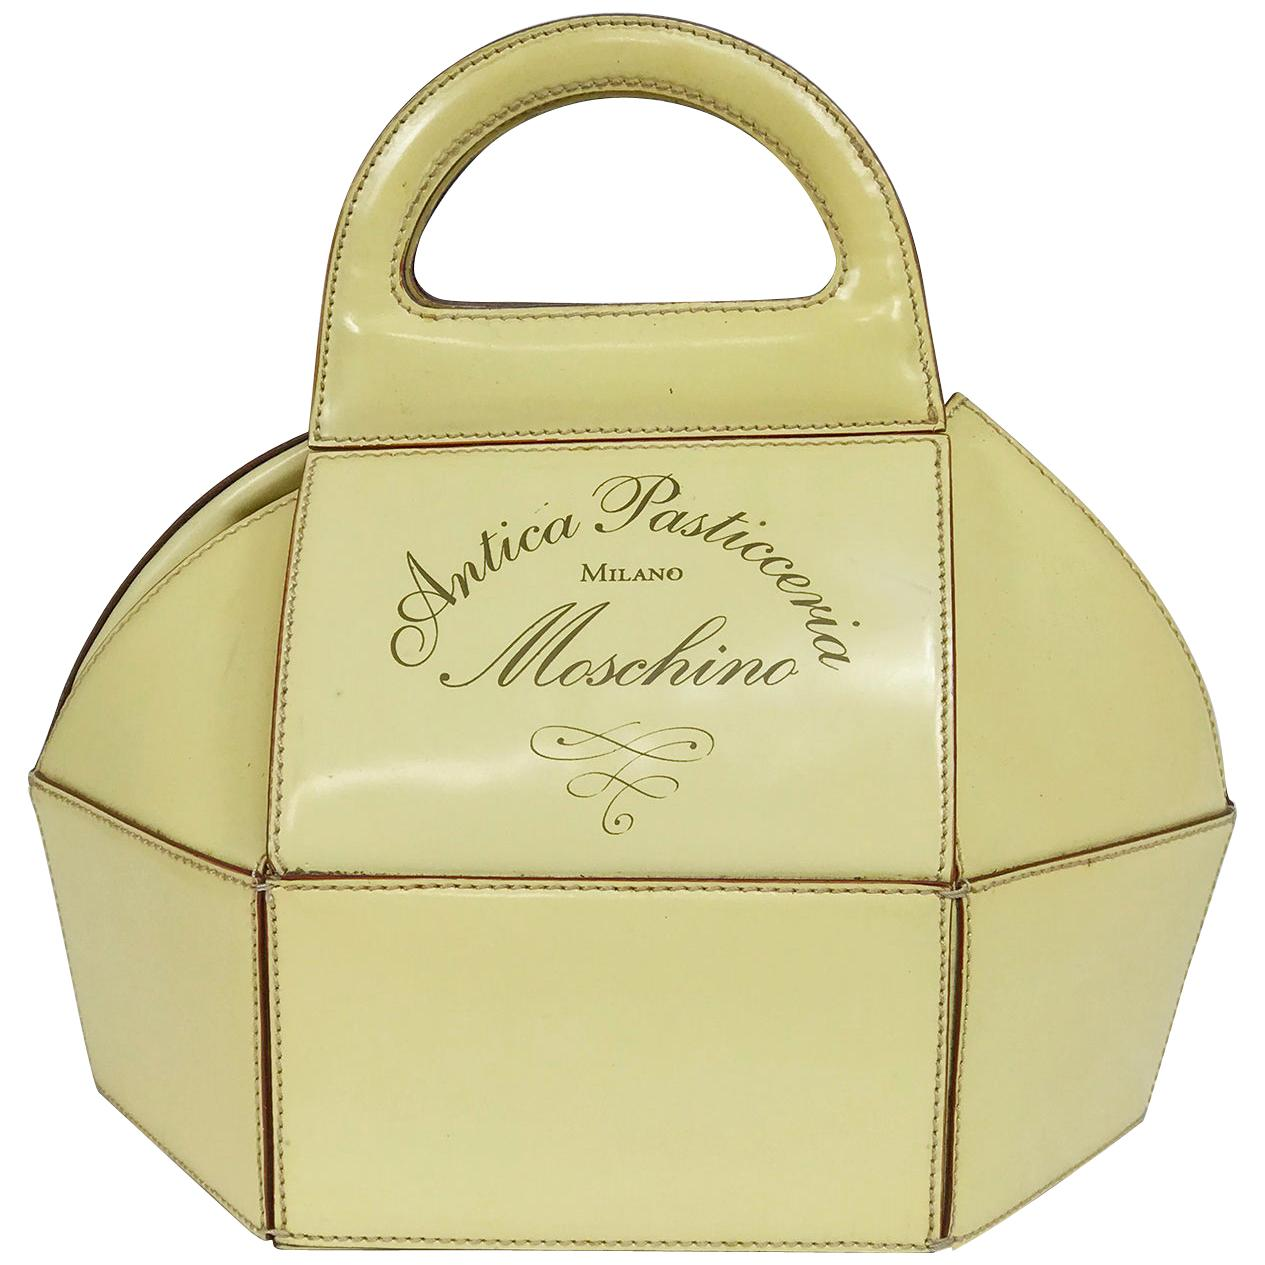 Moschino Pastry Box Glazed Leather Handbag